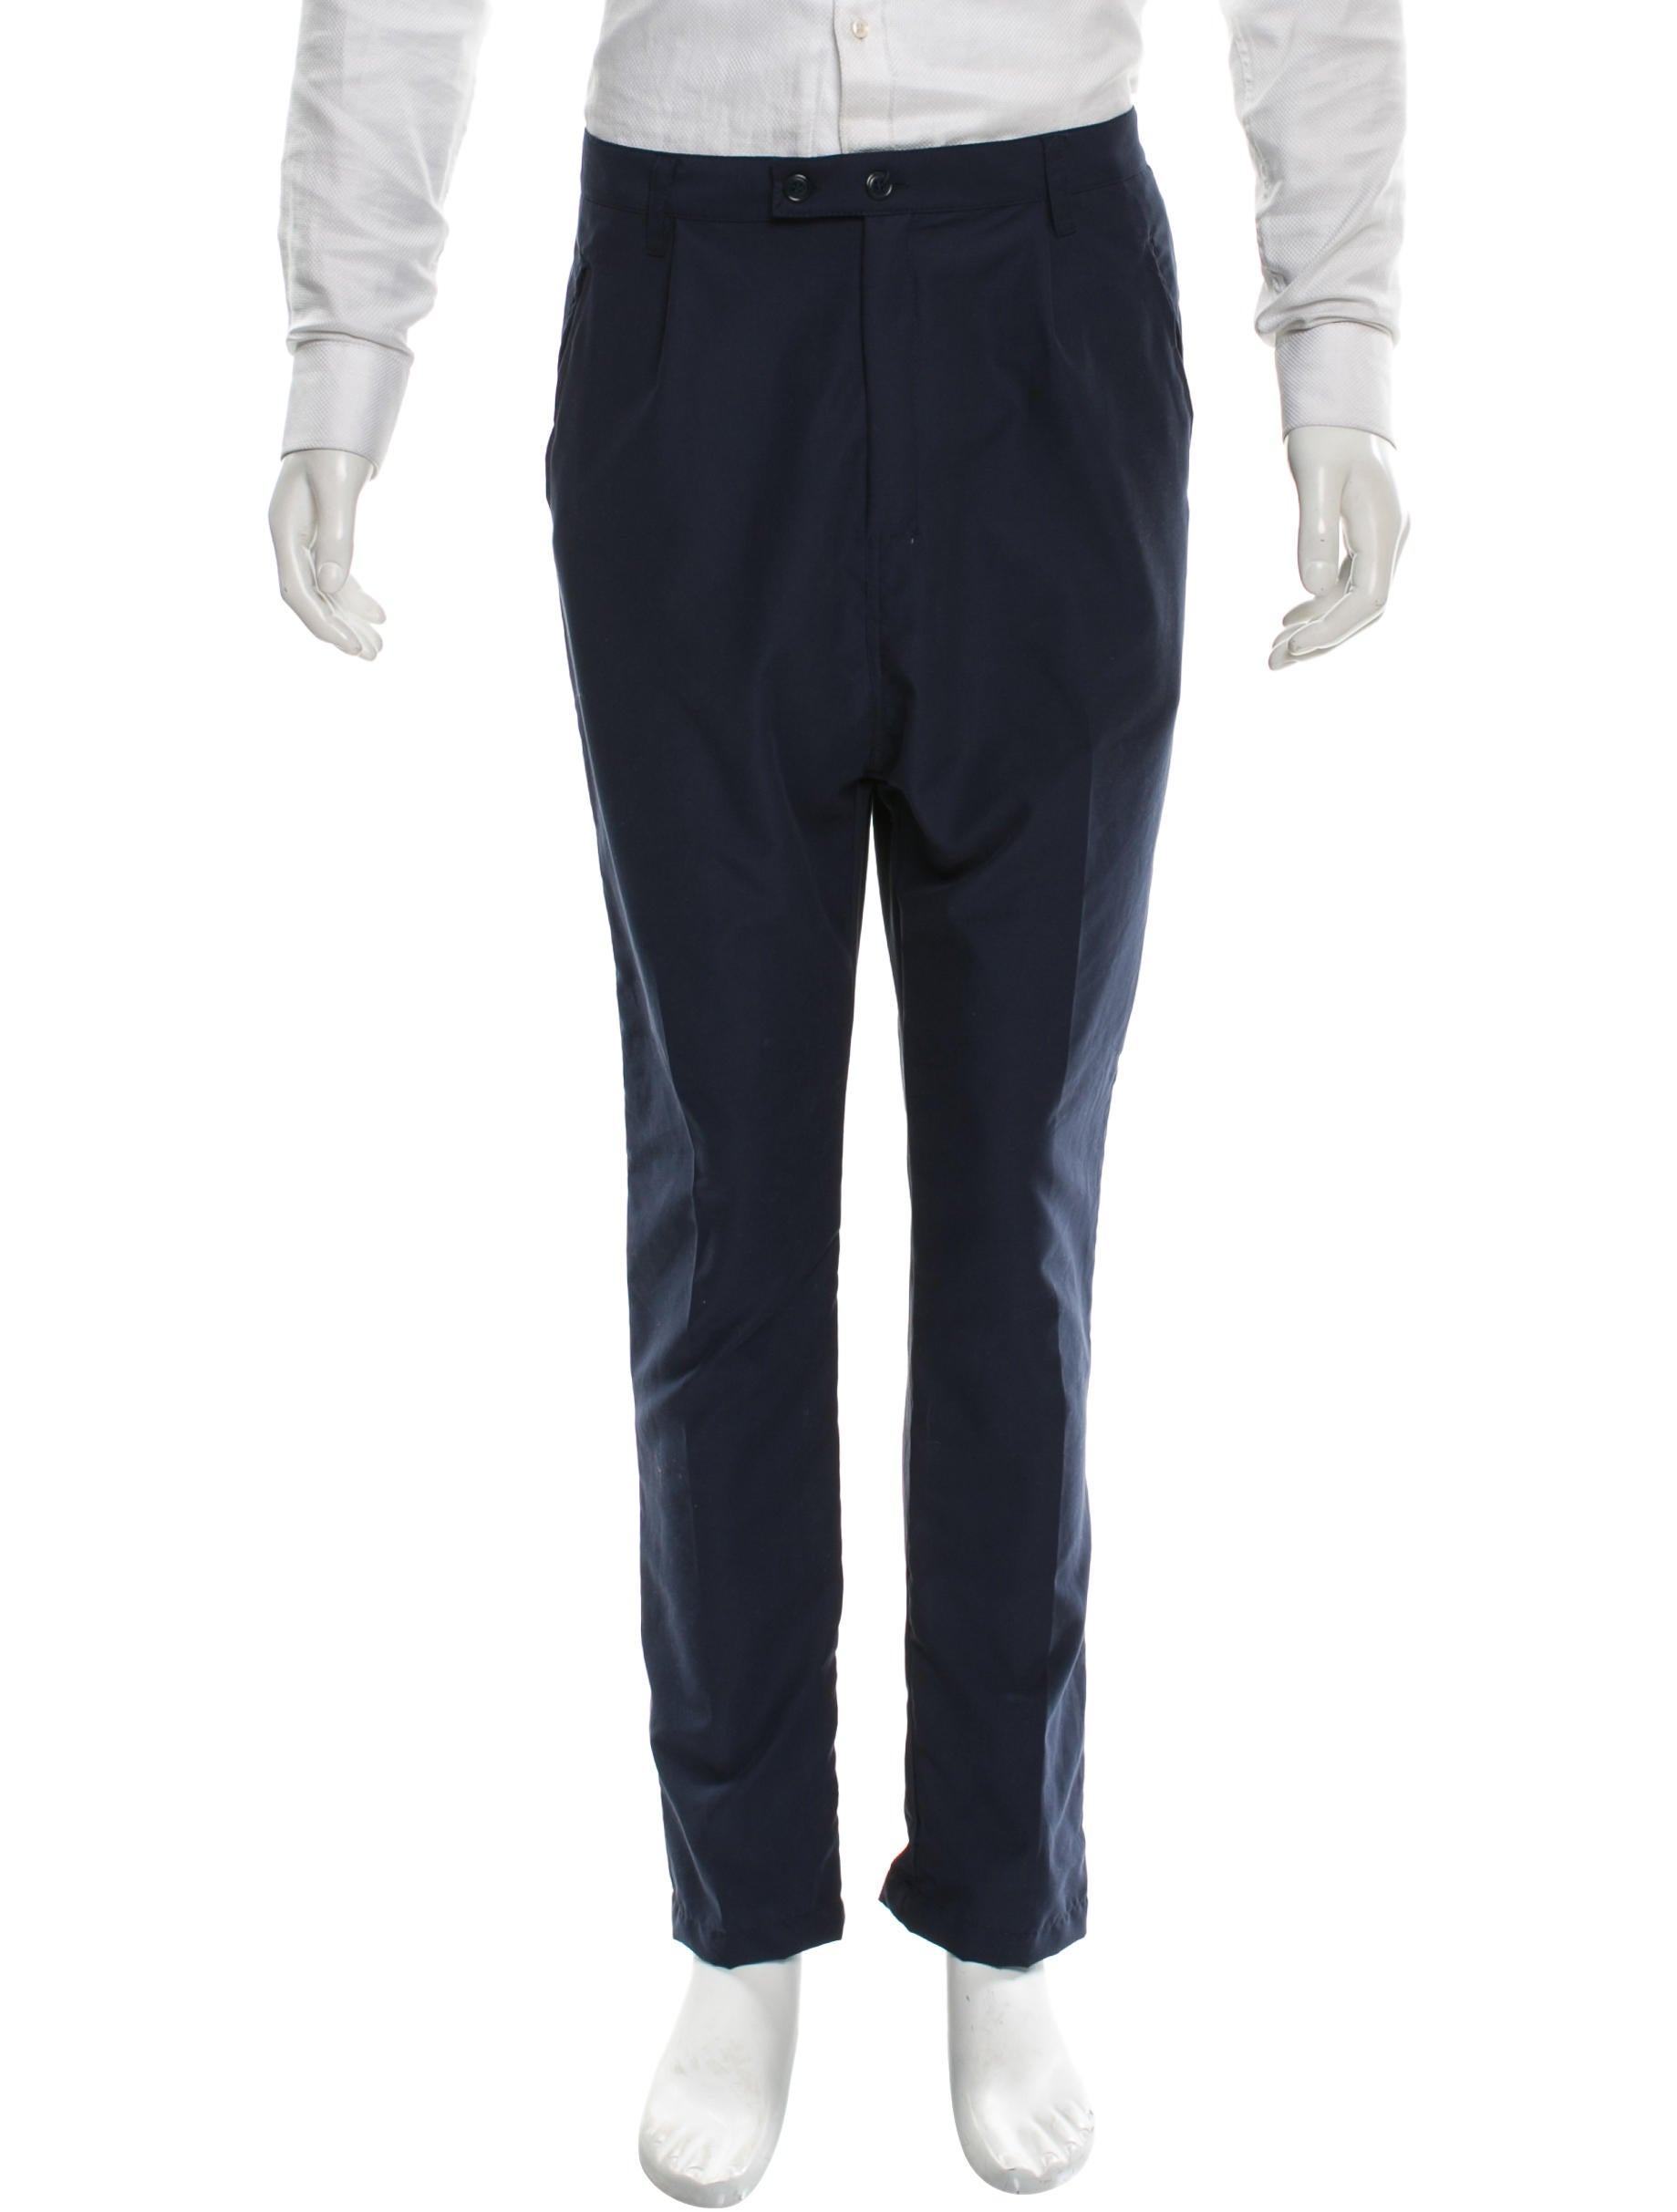 Office Supplies Office Electronics Walmart for Business. Video Games. Certified Refurbished. Skip to next department. Product - Alfani Women's Slim Leg Ponte Pants. Product Image. Price $ Product Title. Alfani Women's Slim Leg Ponte Pants. Product - Women's 5 Pocket Relaxed Fit Ponte Trouser Pants. Product Image.